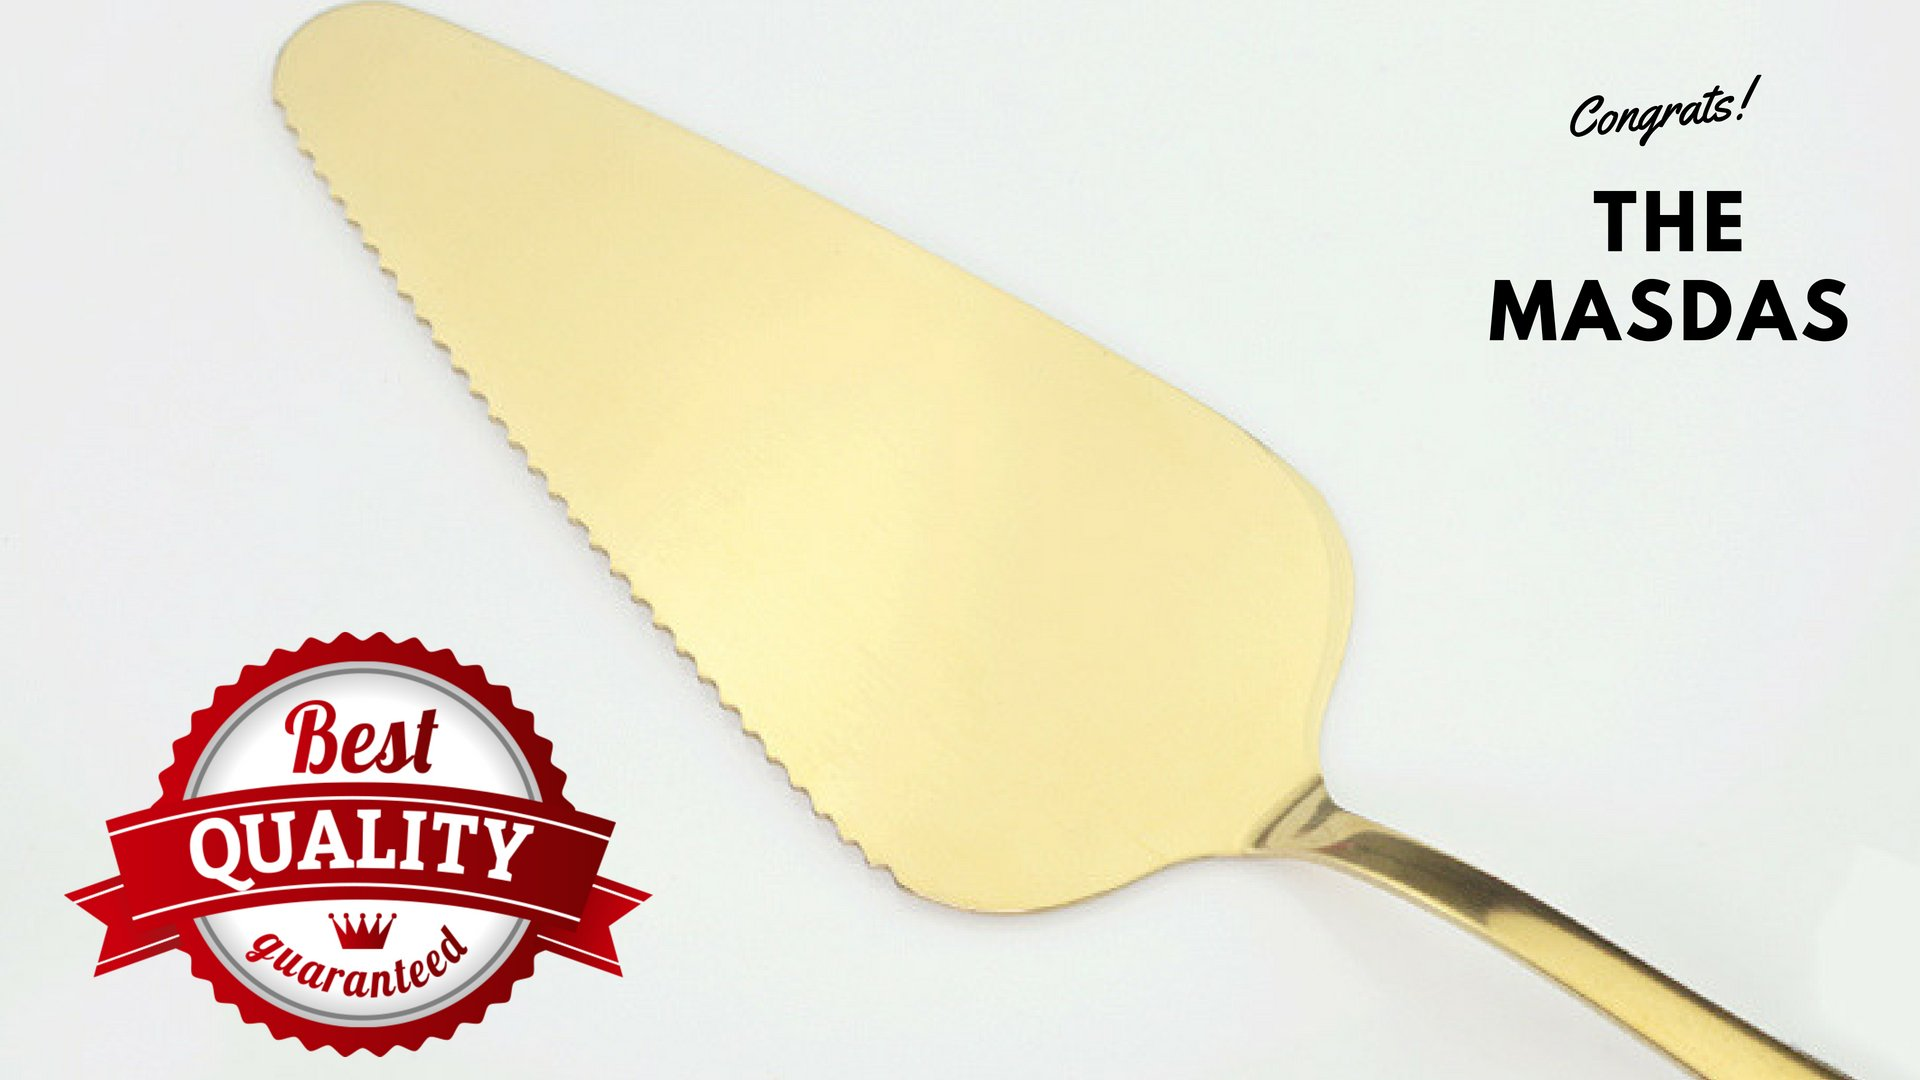 Premium Cake Cutter by the R@cheal collections, Cake Server Stainless Steel, Joinor Cake Leaves Baking Pie Crust Cutters. Order Yours Today.